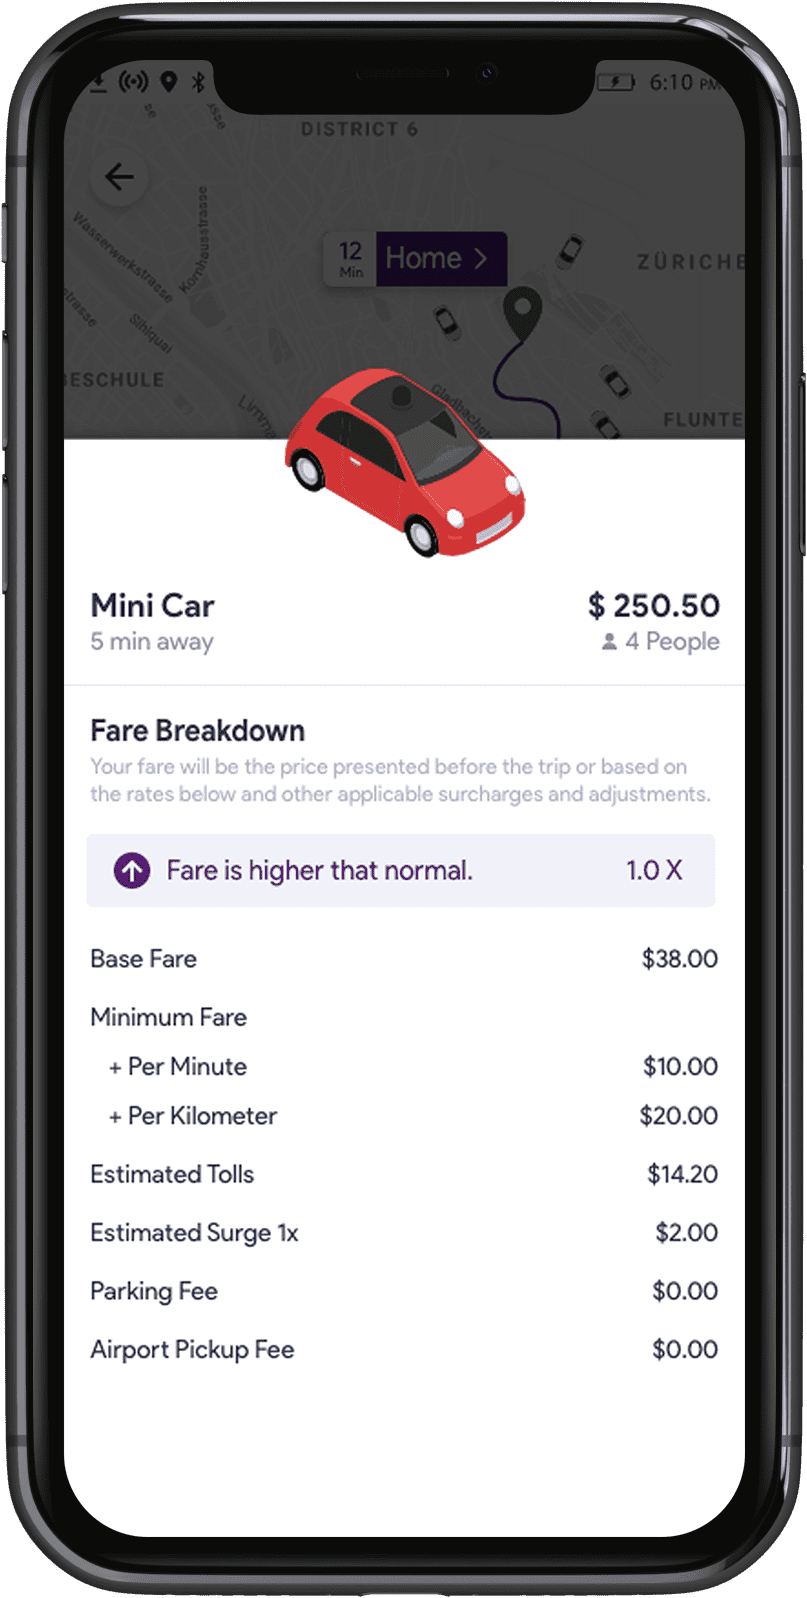 check-veichle-detailed-price-in-ride-sharing-customer-app.png